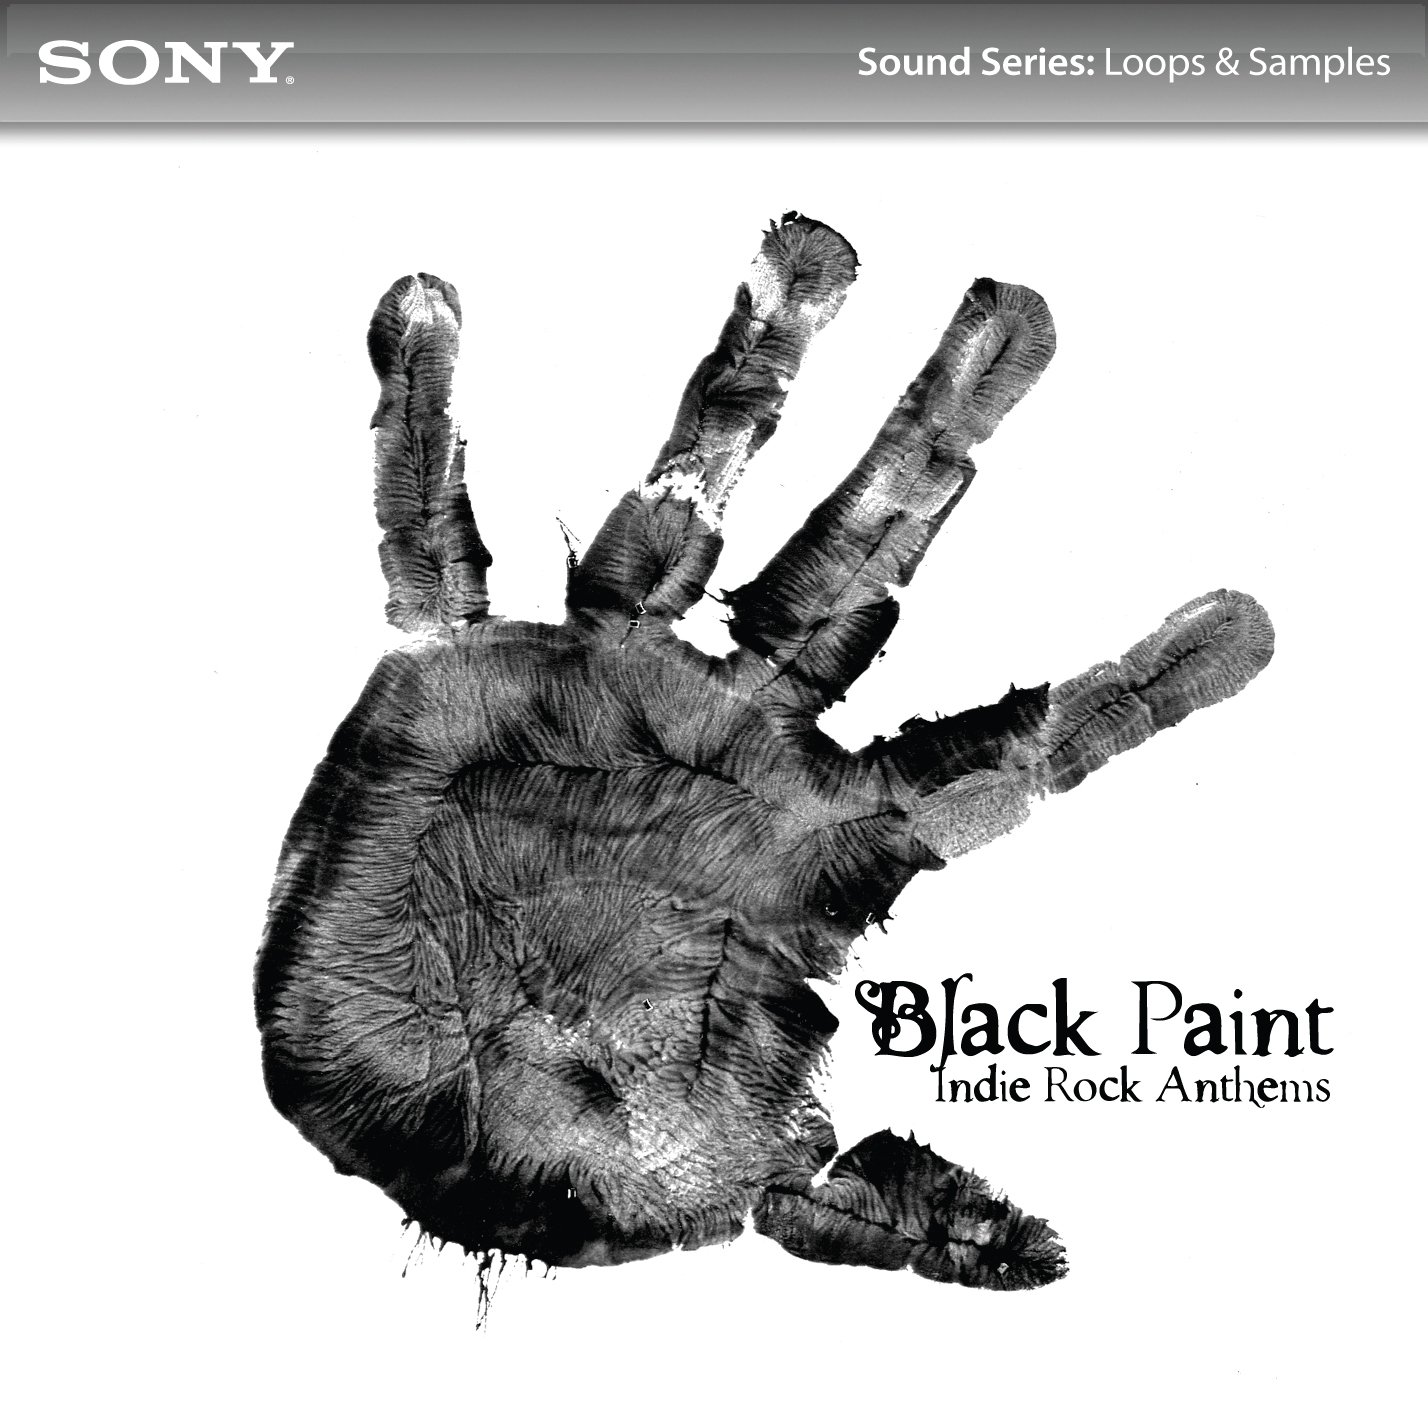 Black Paint: Indie Rock Anthems [Download] Sony Creative Software DLC20